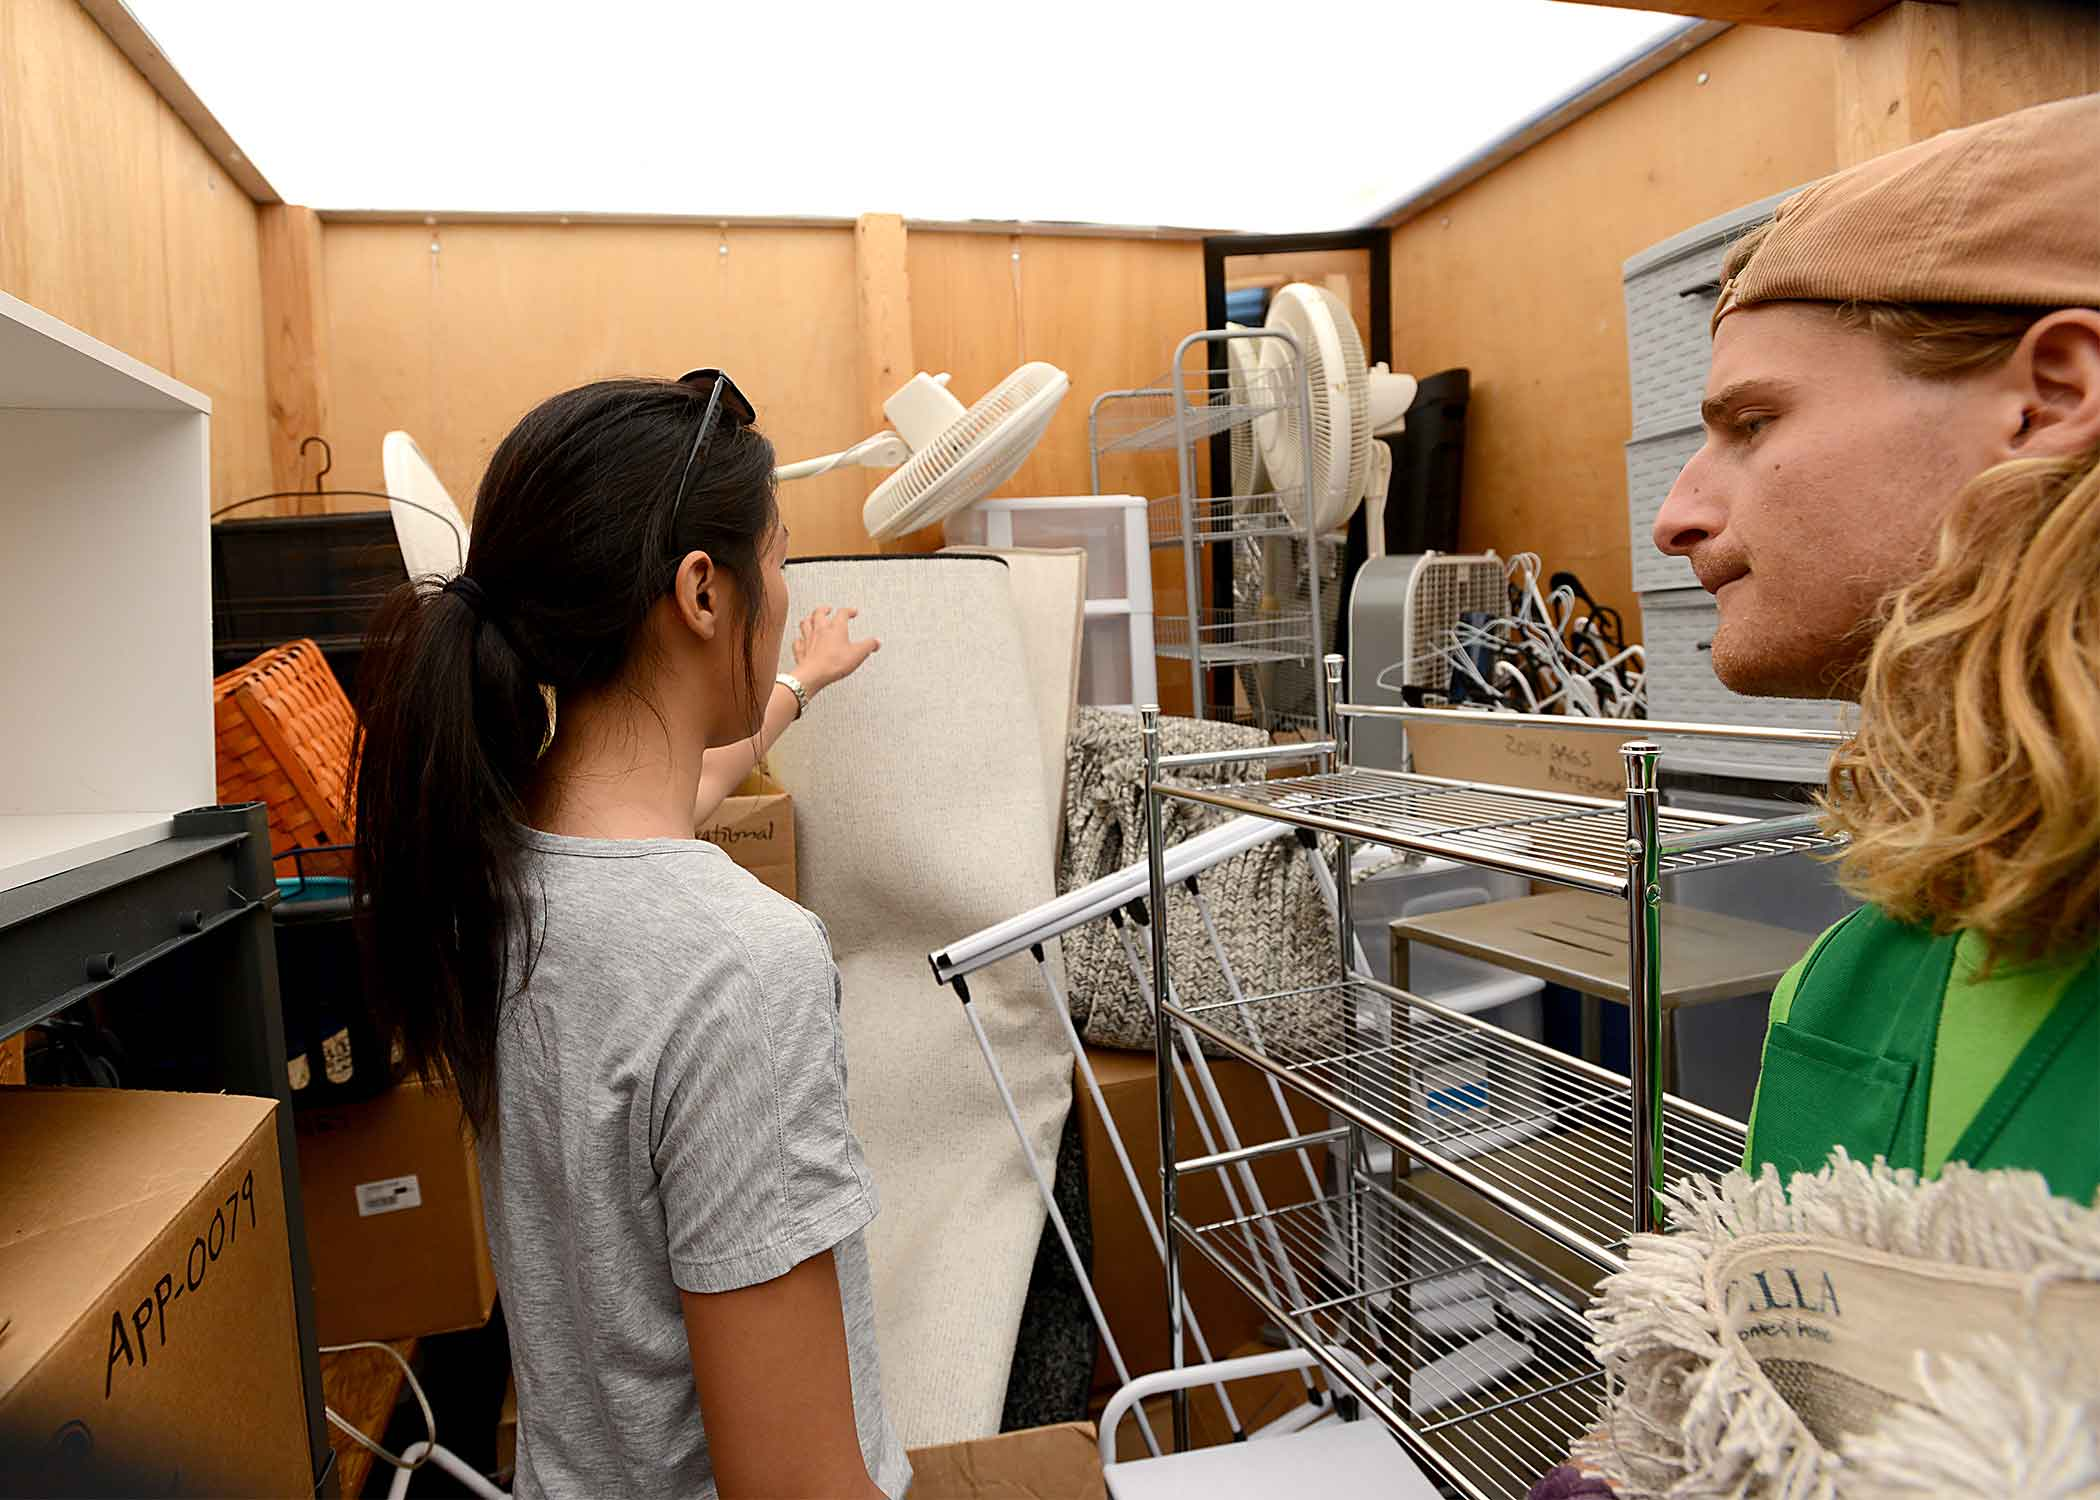 Adam Simon, right and Darin Son of Irvine, California, examine donated items that will be sold in September at the CP Thrift sale.